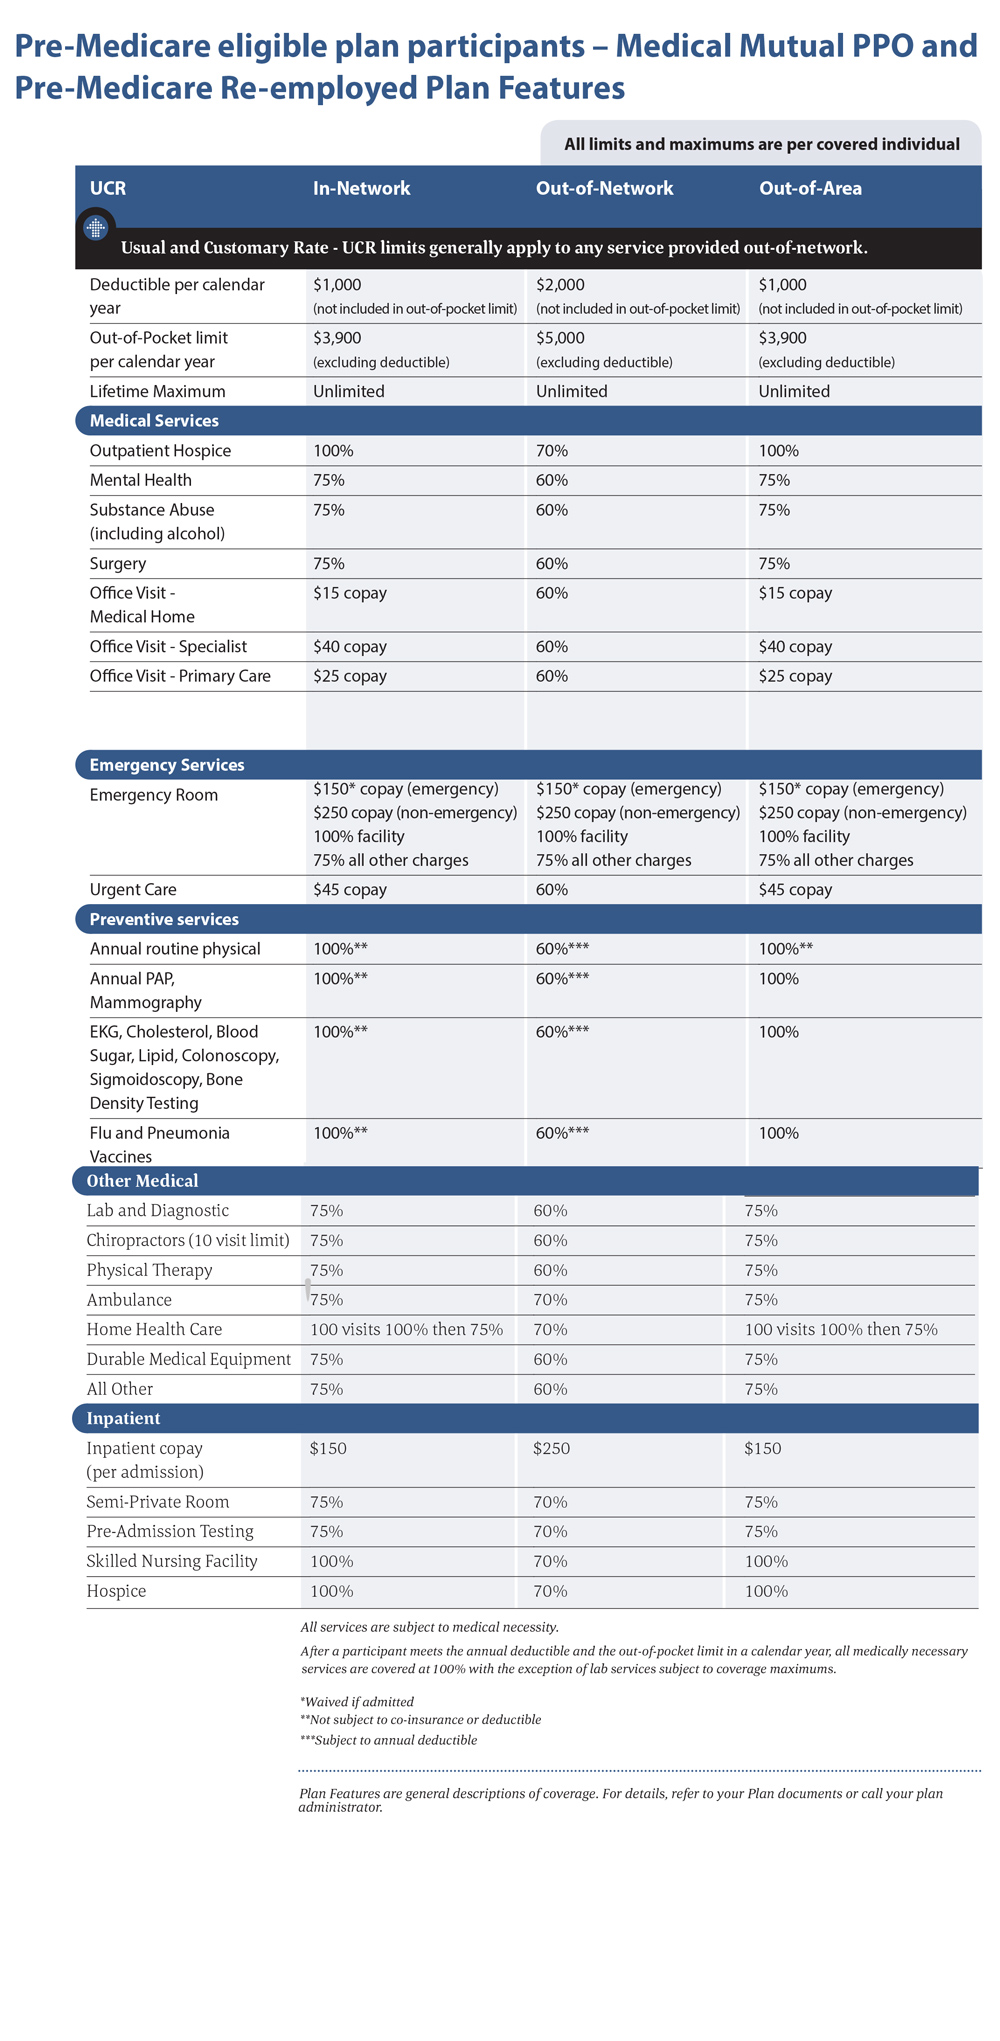 OPERS Health Care - Medical Mutual PPO Plan